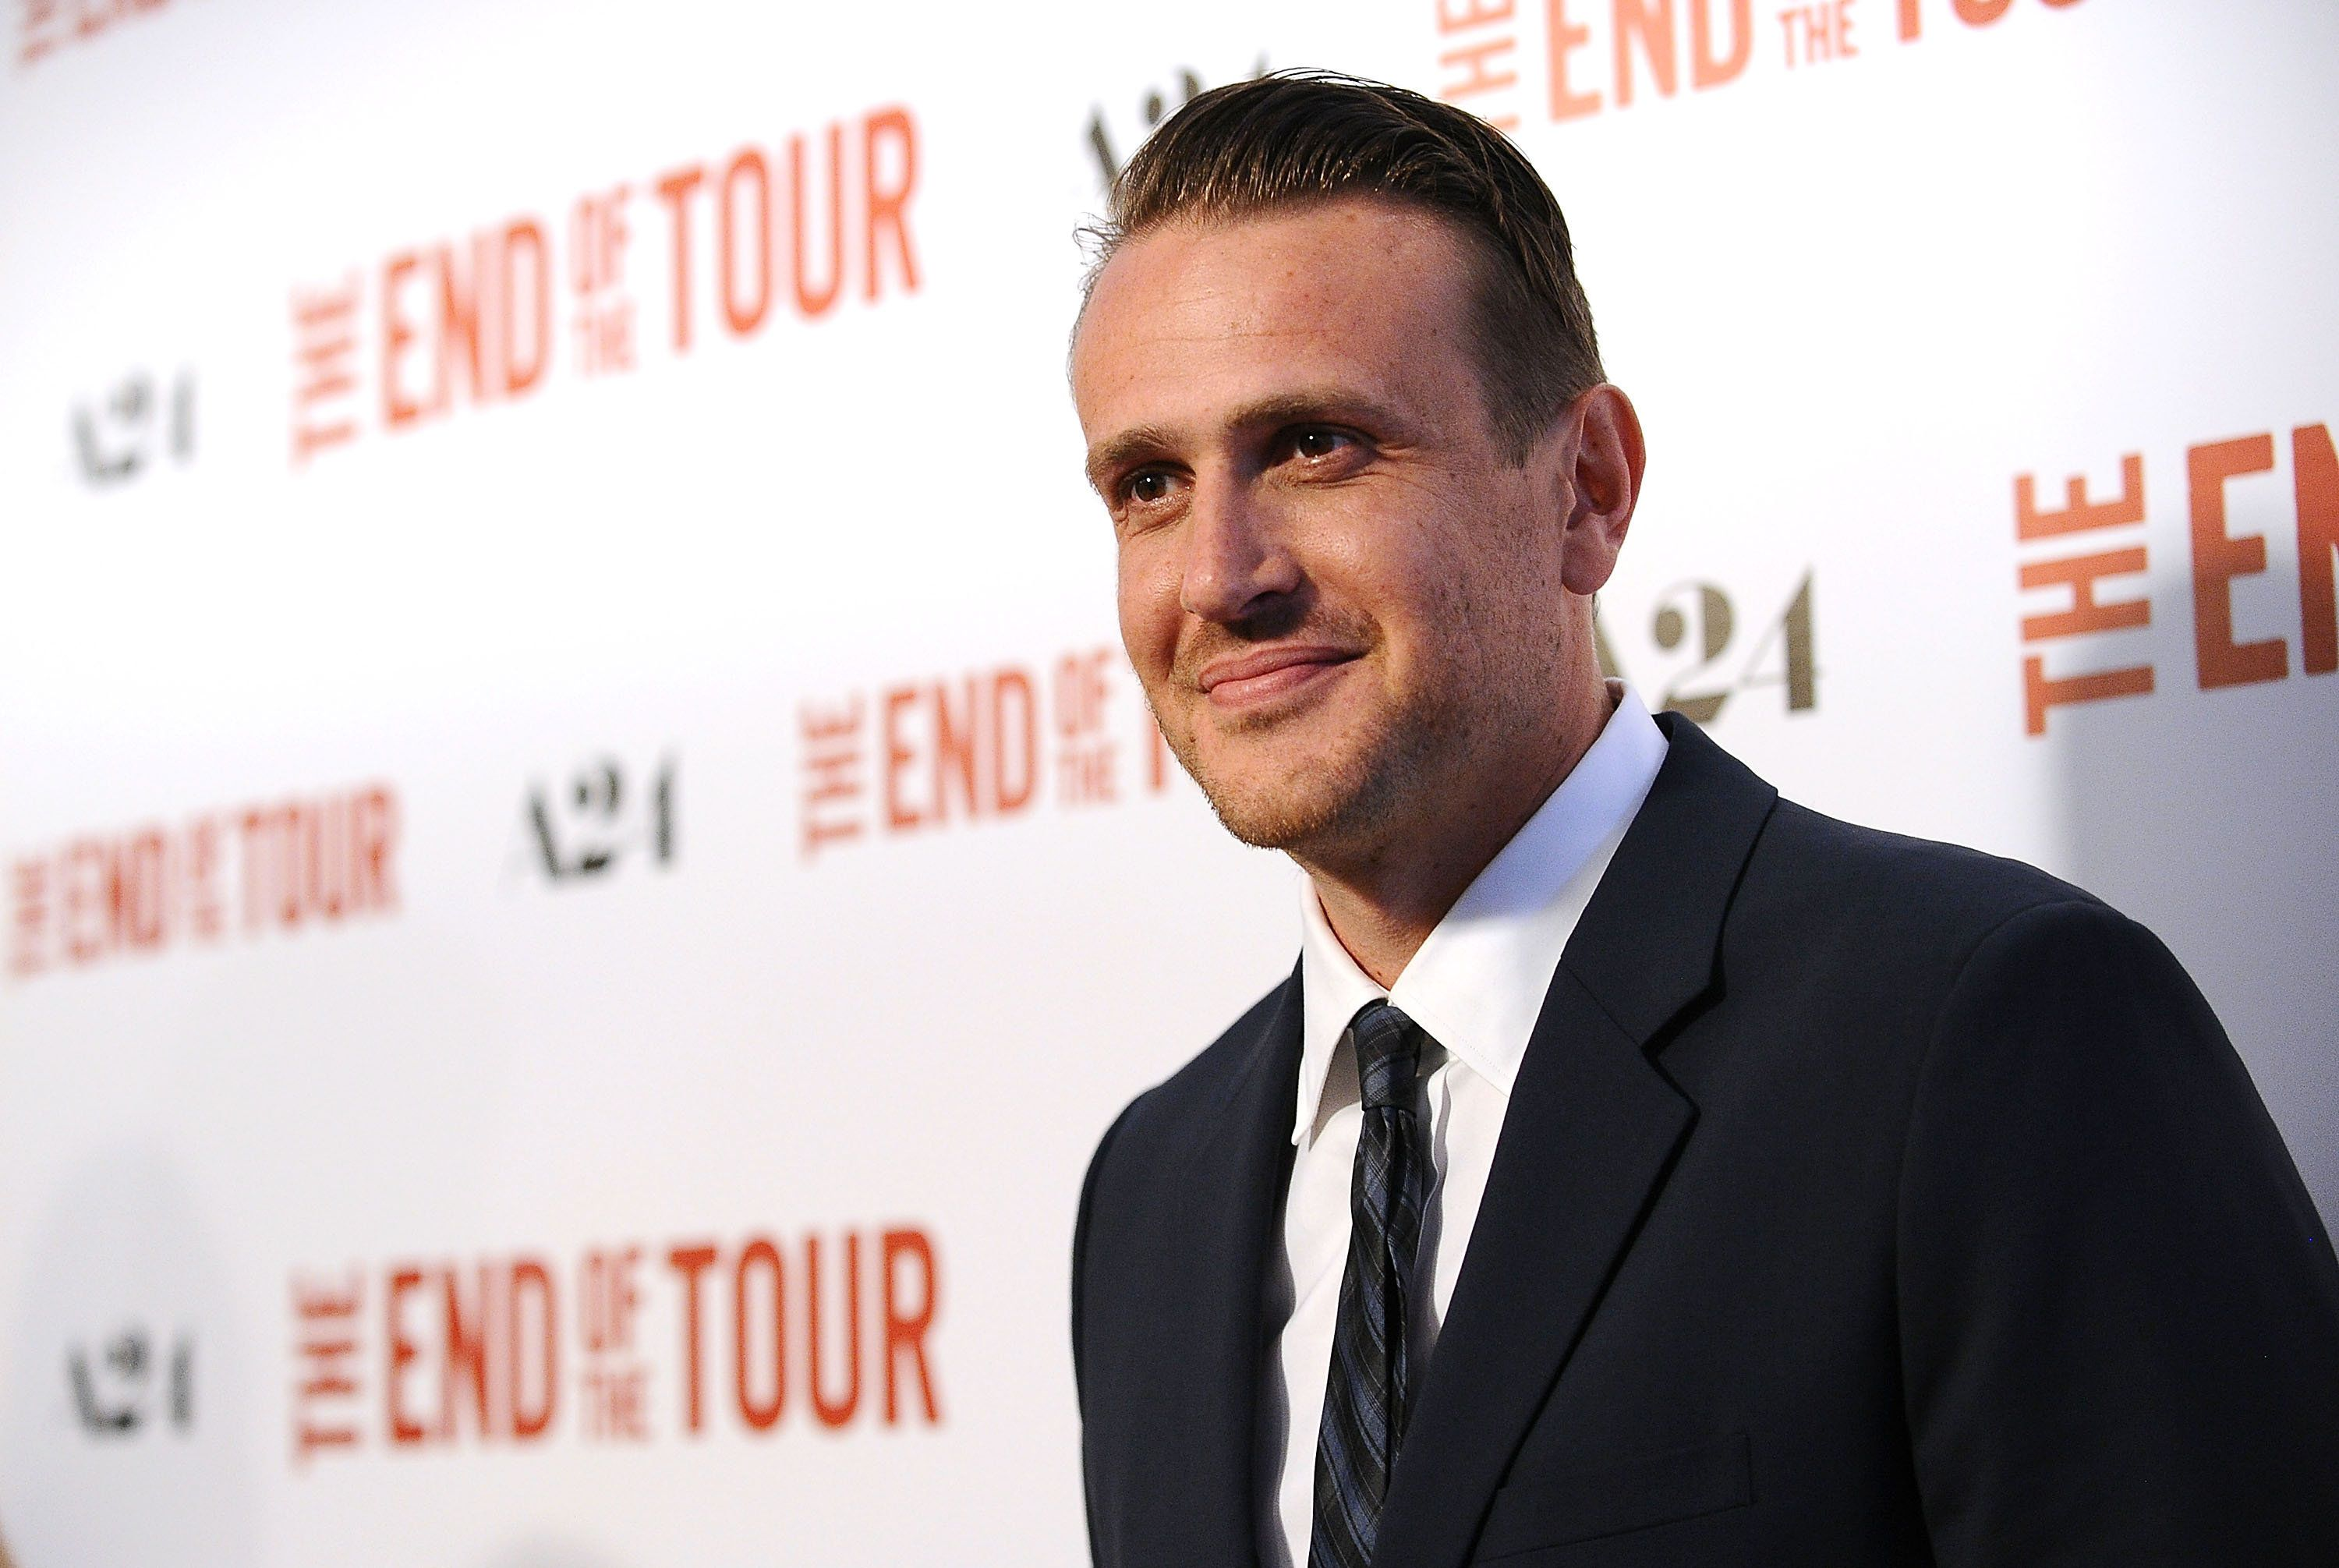 BEVERLY HILLS, CA - JULY 13:  Actor Jason Segel attends the premiere of 'The End Of The Tour' at Writers Guild Theater on July 13, 2015 in Beverly Hills, California.  (Photo by Jason LaVeris/FilmMagic)